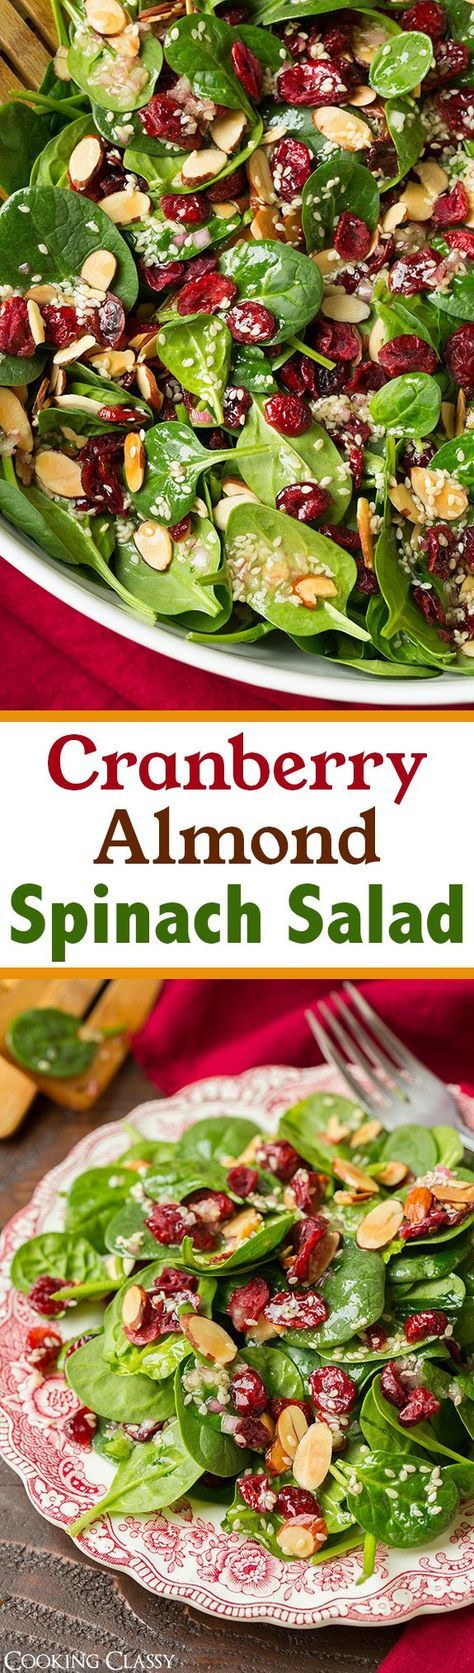 Cranberry Almond Spinach Salad with Sesame Seed Dressing – A delicious, simple and healthy salad!